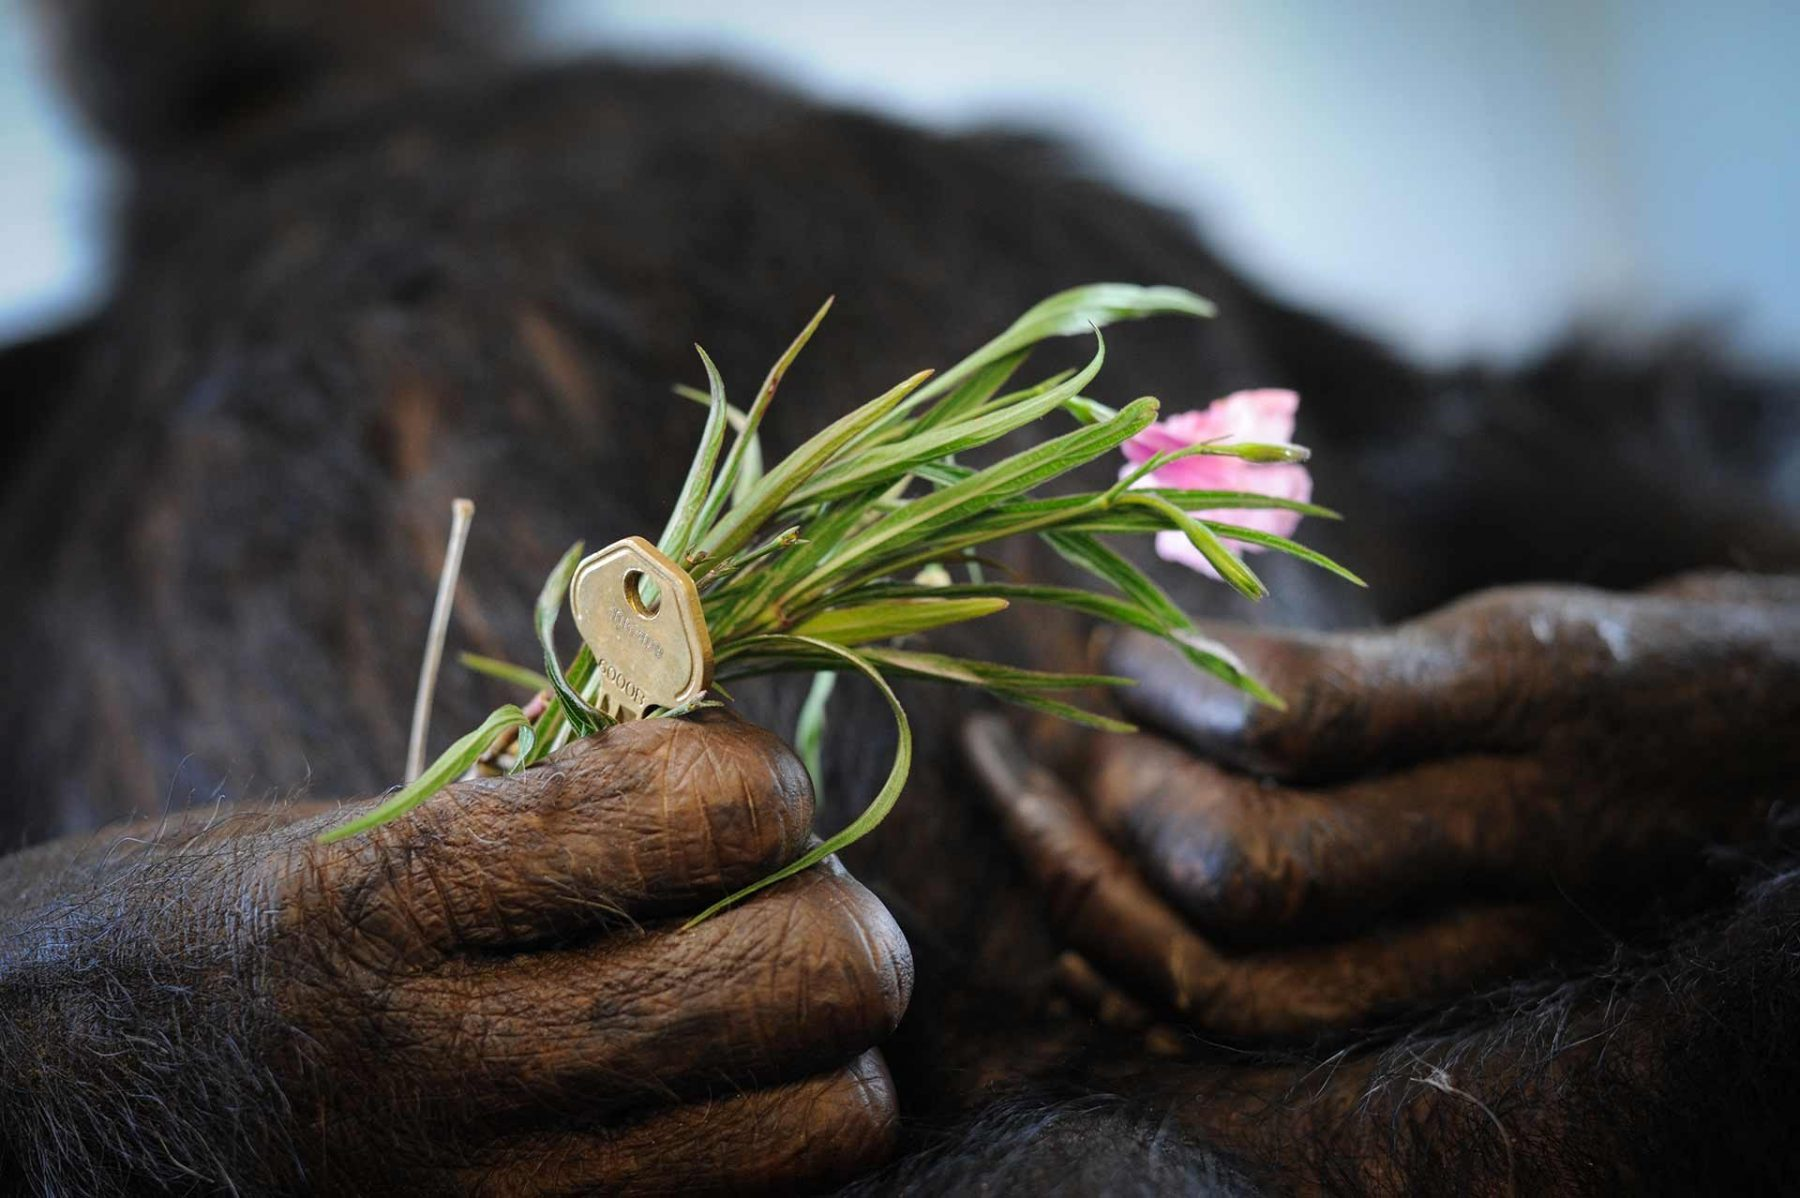 When a chimpanzee at Save the Chimps passes away, a key is placed in their hand, symbolic of a key to freedom. The primates at Save the Chimps have all been rescued from lives in laboratories, or from the pet and entertainment industries. USA, 2014.